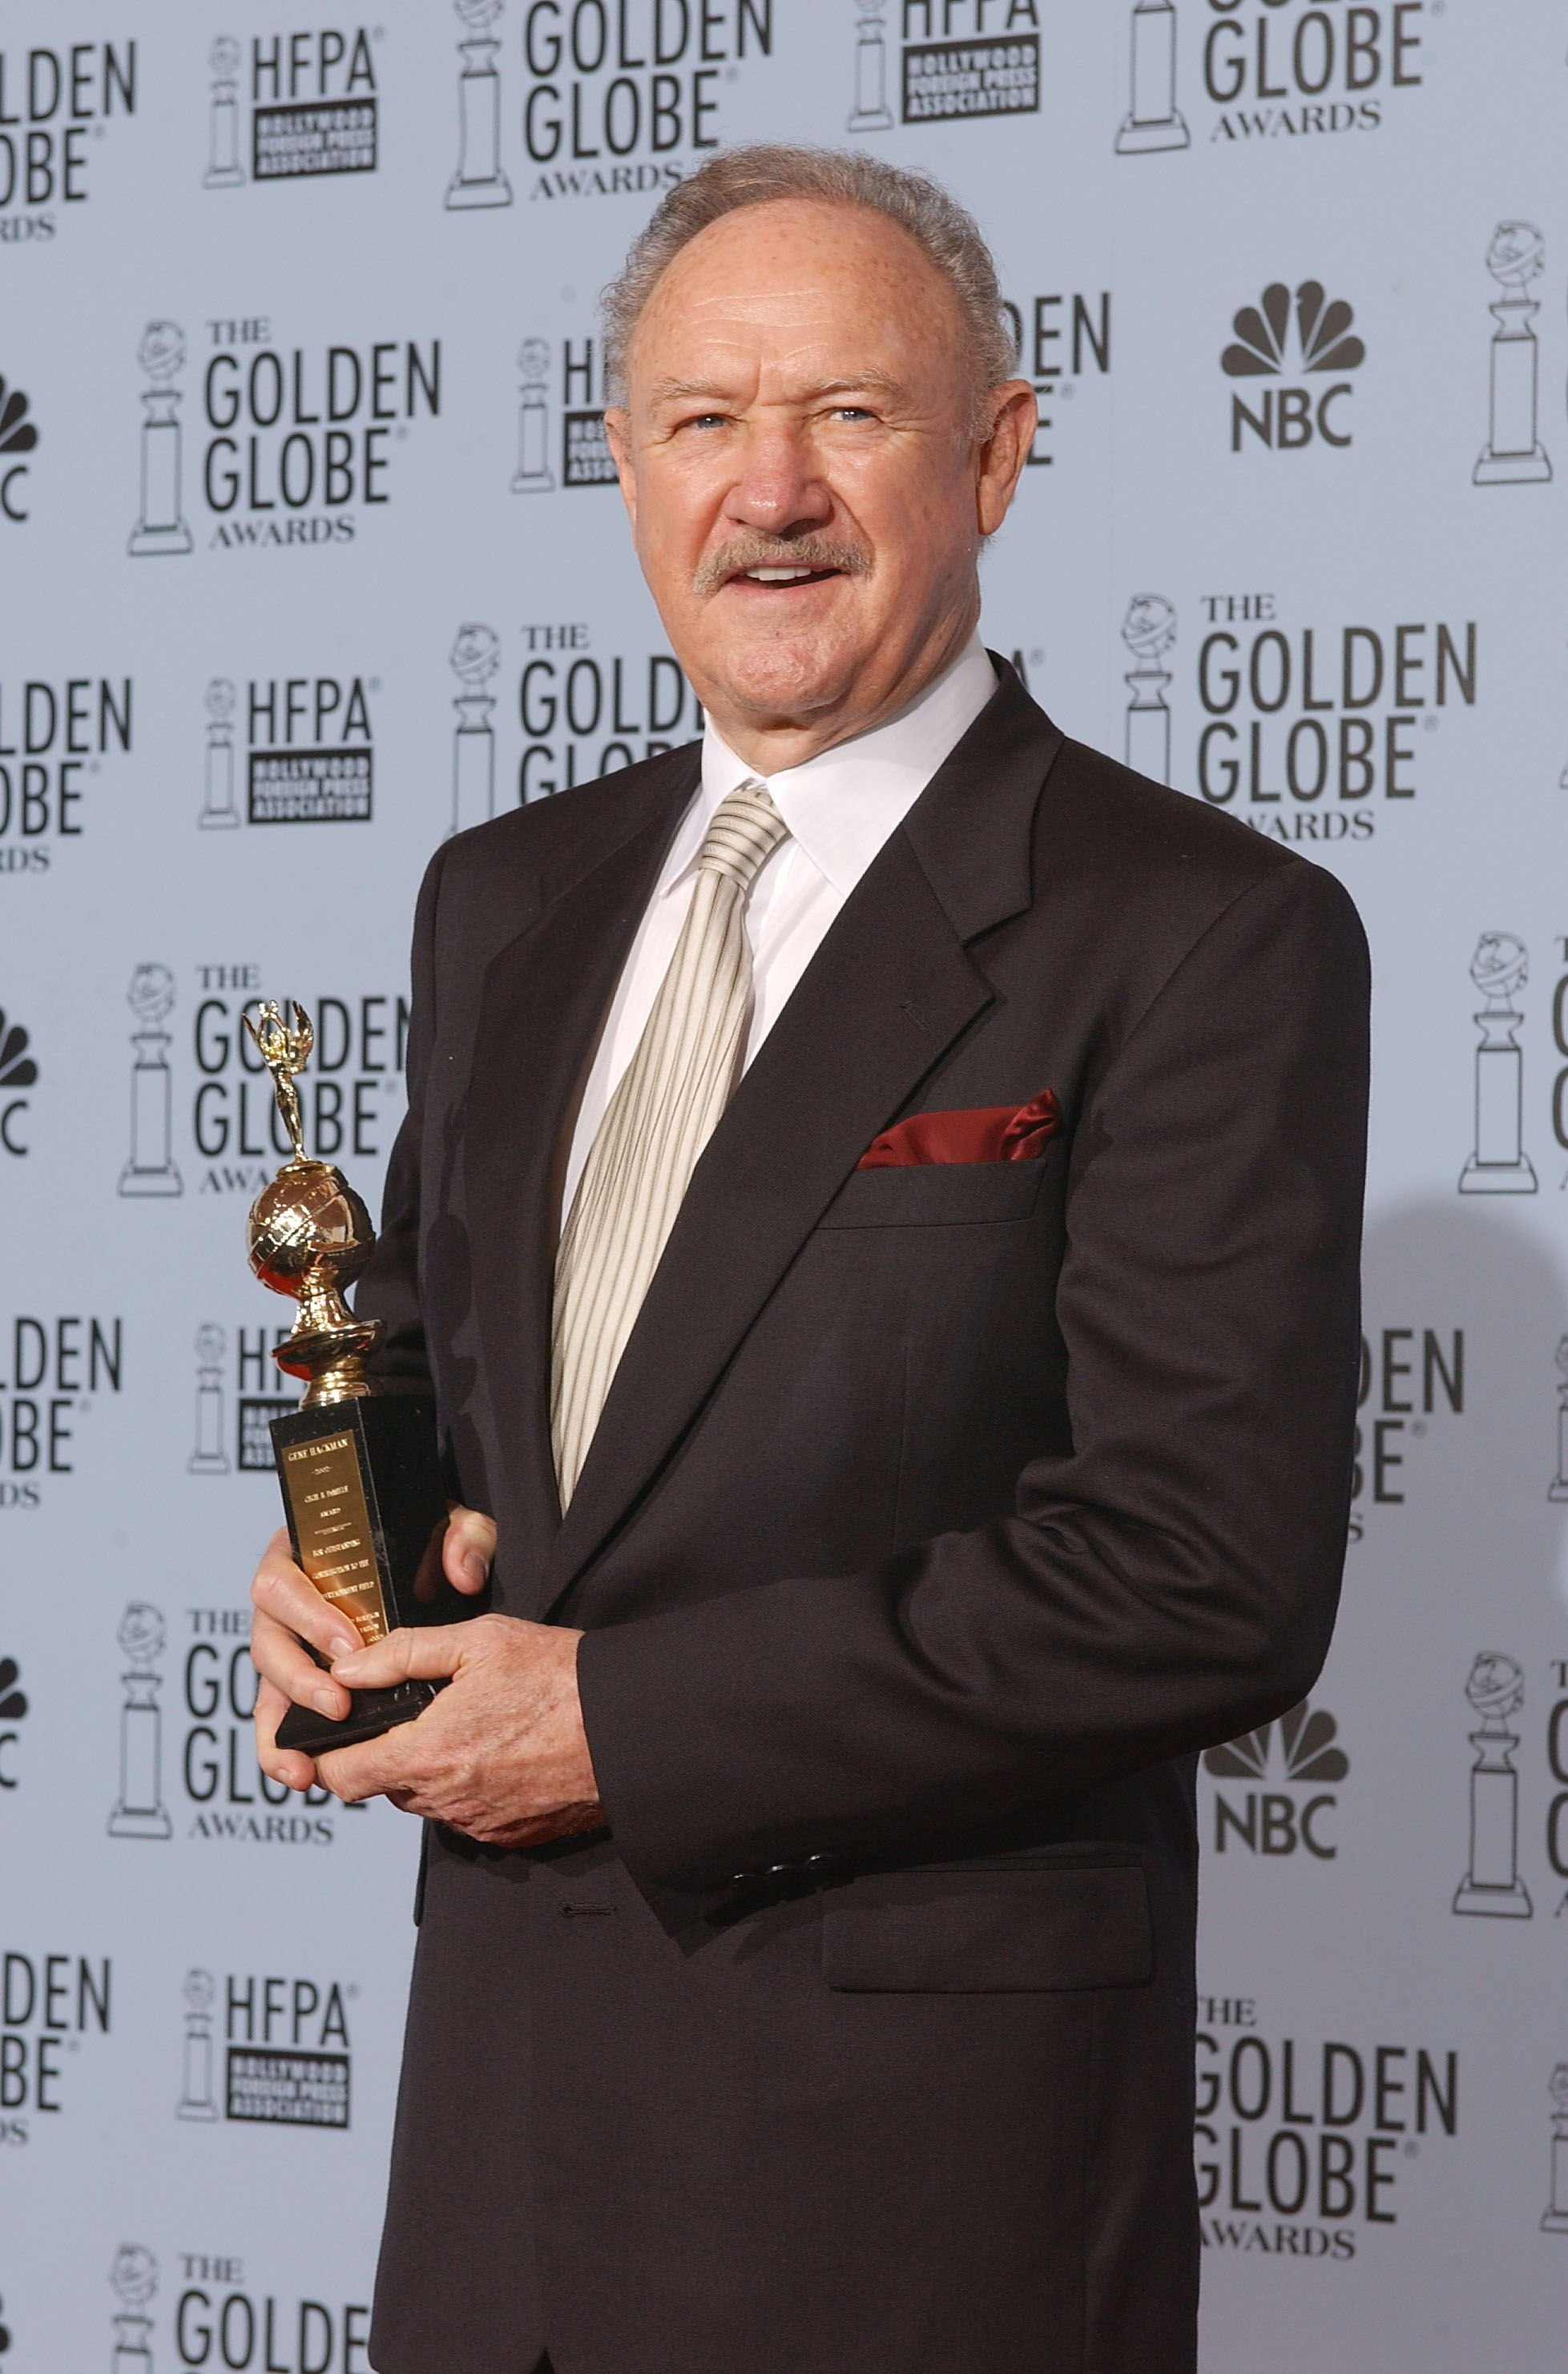 Gene Hackman after winning the Cecil B. DeMille Award at the Golden Globe Awards in 2003 | Source: Getty Images